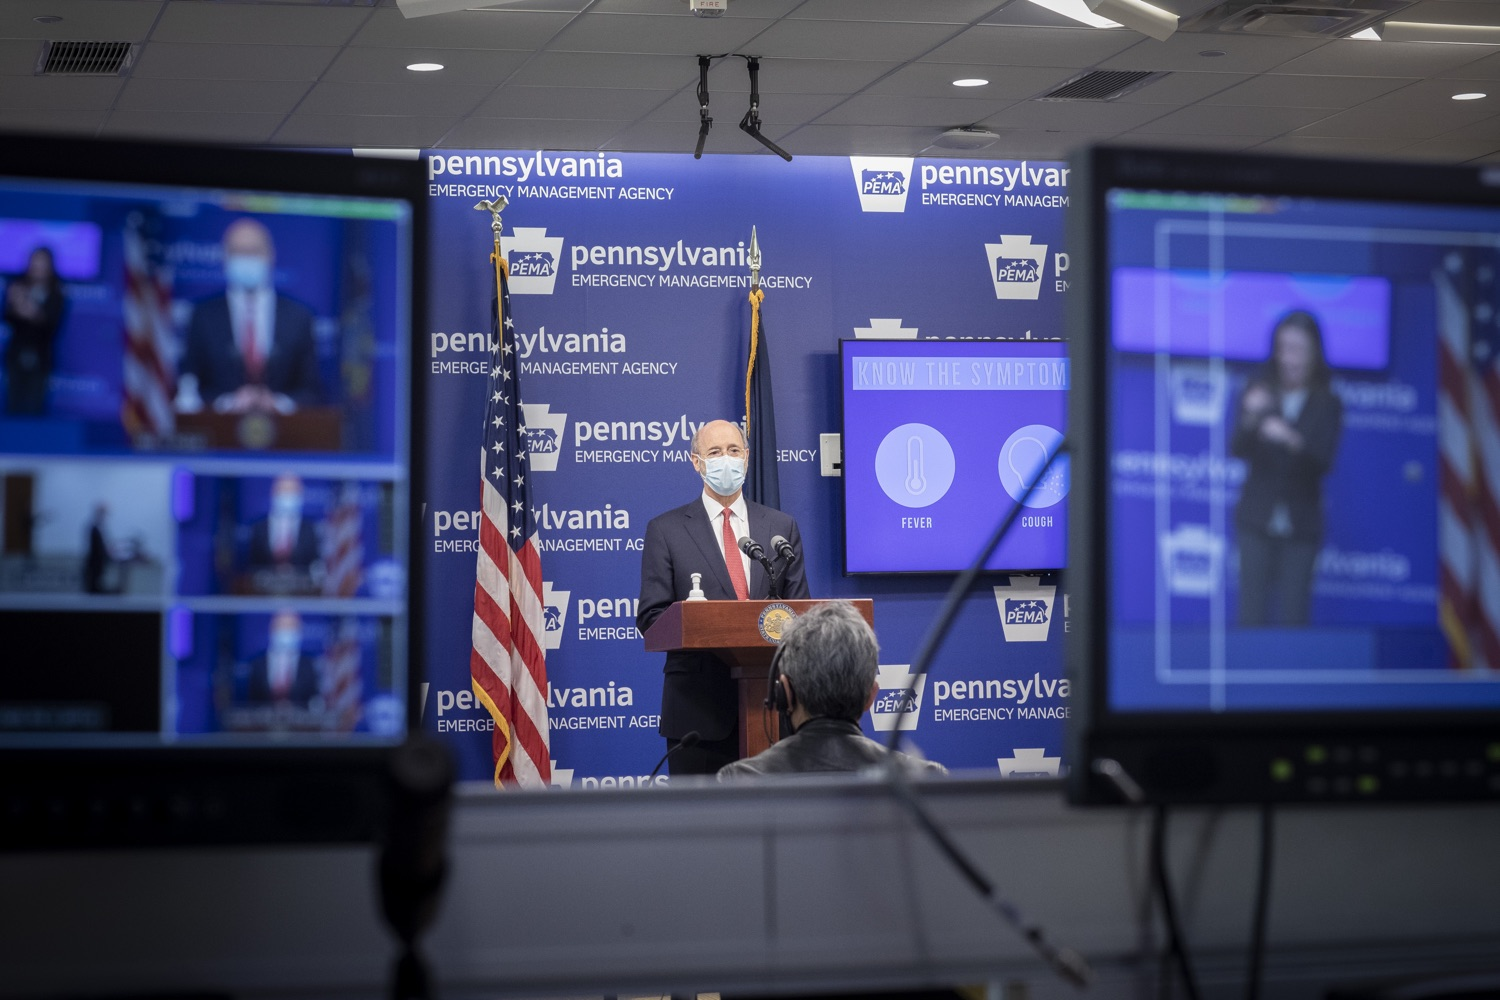 "<a href=""https://filesource.wostreaming.net/commonwealthofpa/photo/18405_gov_covidUpdate_dz_005.jpg"" target=""_blank"">⇣ Download Photo<br></a>Pennsylvania Governor Tom Wolf answers questions from the press.  With new modeling projecting 22,000 new COVID-19 cases per day in Pennsylvania in December, Governor Tom Wolf and Secretary of Health Dr. Rachel Levine today announced new targeted mitigation measures to help stop the spread during this critical time. These include a robust enforcement plan targeted at chronic violators along with an effort to ensure schools are safe and in compliance with COVID safety plans. The administration is also encouraging Pennsylvanians to limit unnecessary travel and stay at home.  Harrisburg, Pa. November 23, 2020"